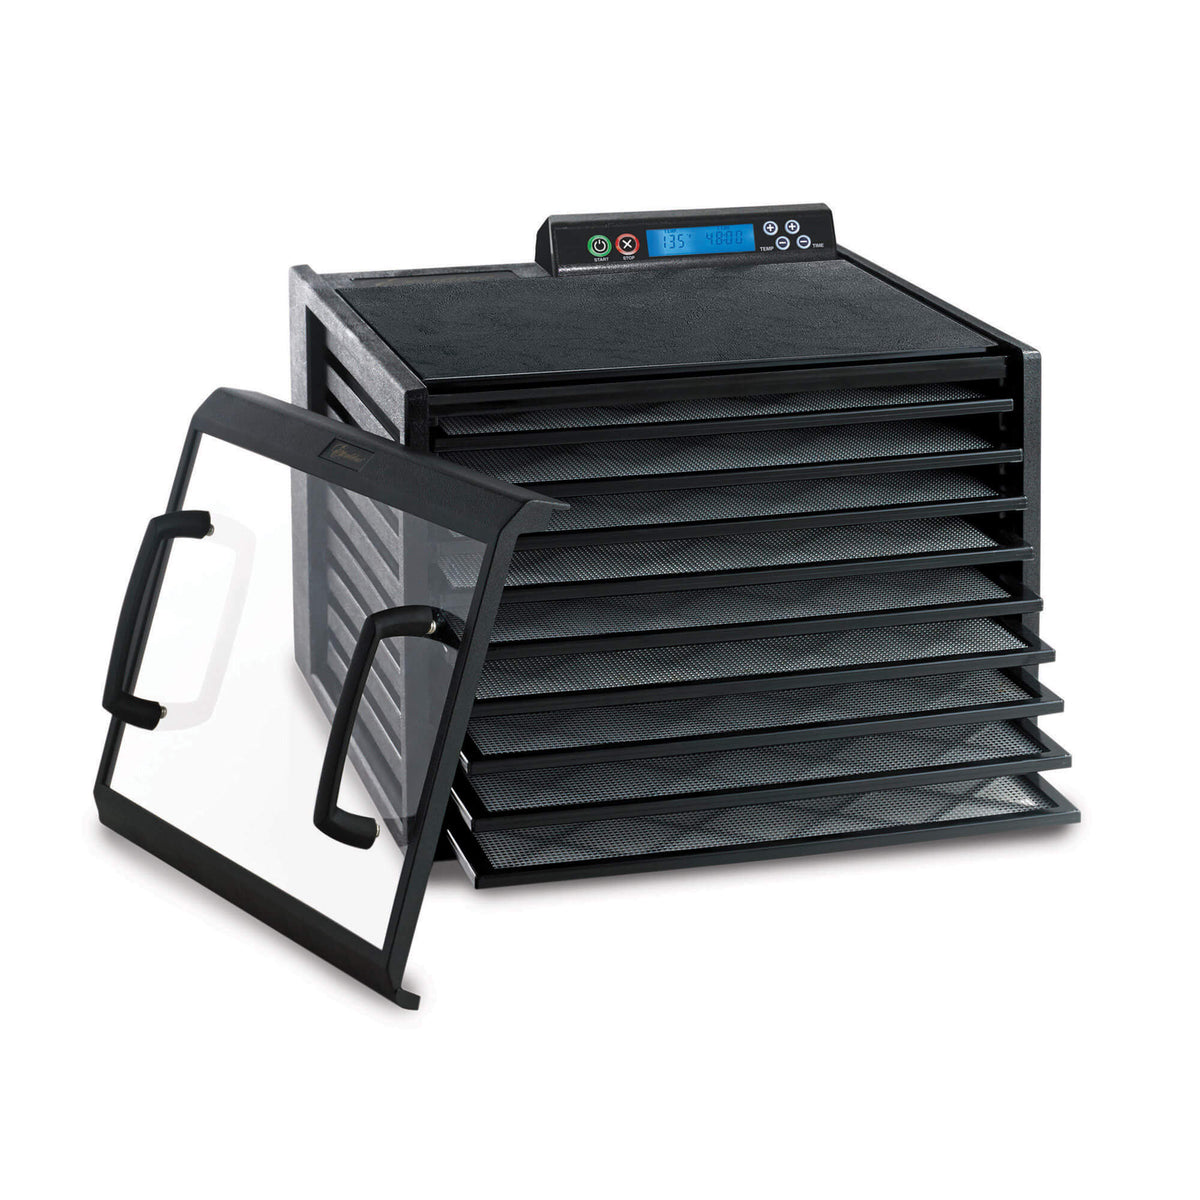 Excalibur 4948CDB 9 tray digital dehydrator with clear door propped to the isde and trays pulled out.